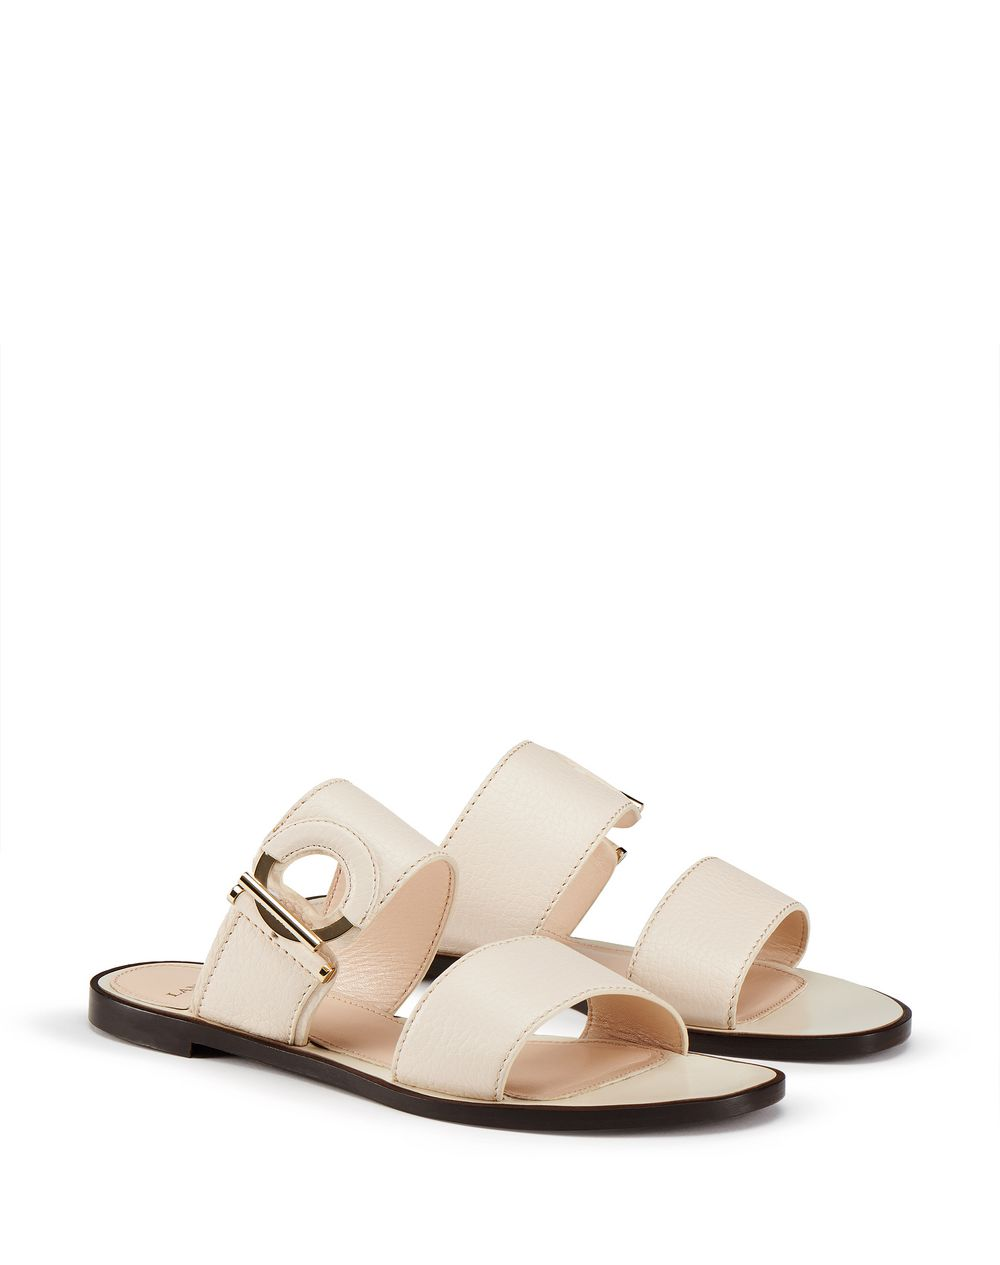 FLAT SANDAL WITH RING  - Lanvin